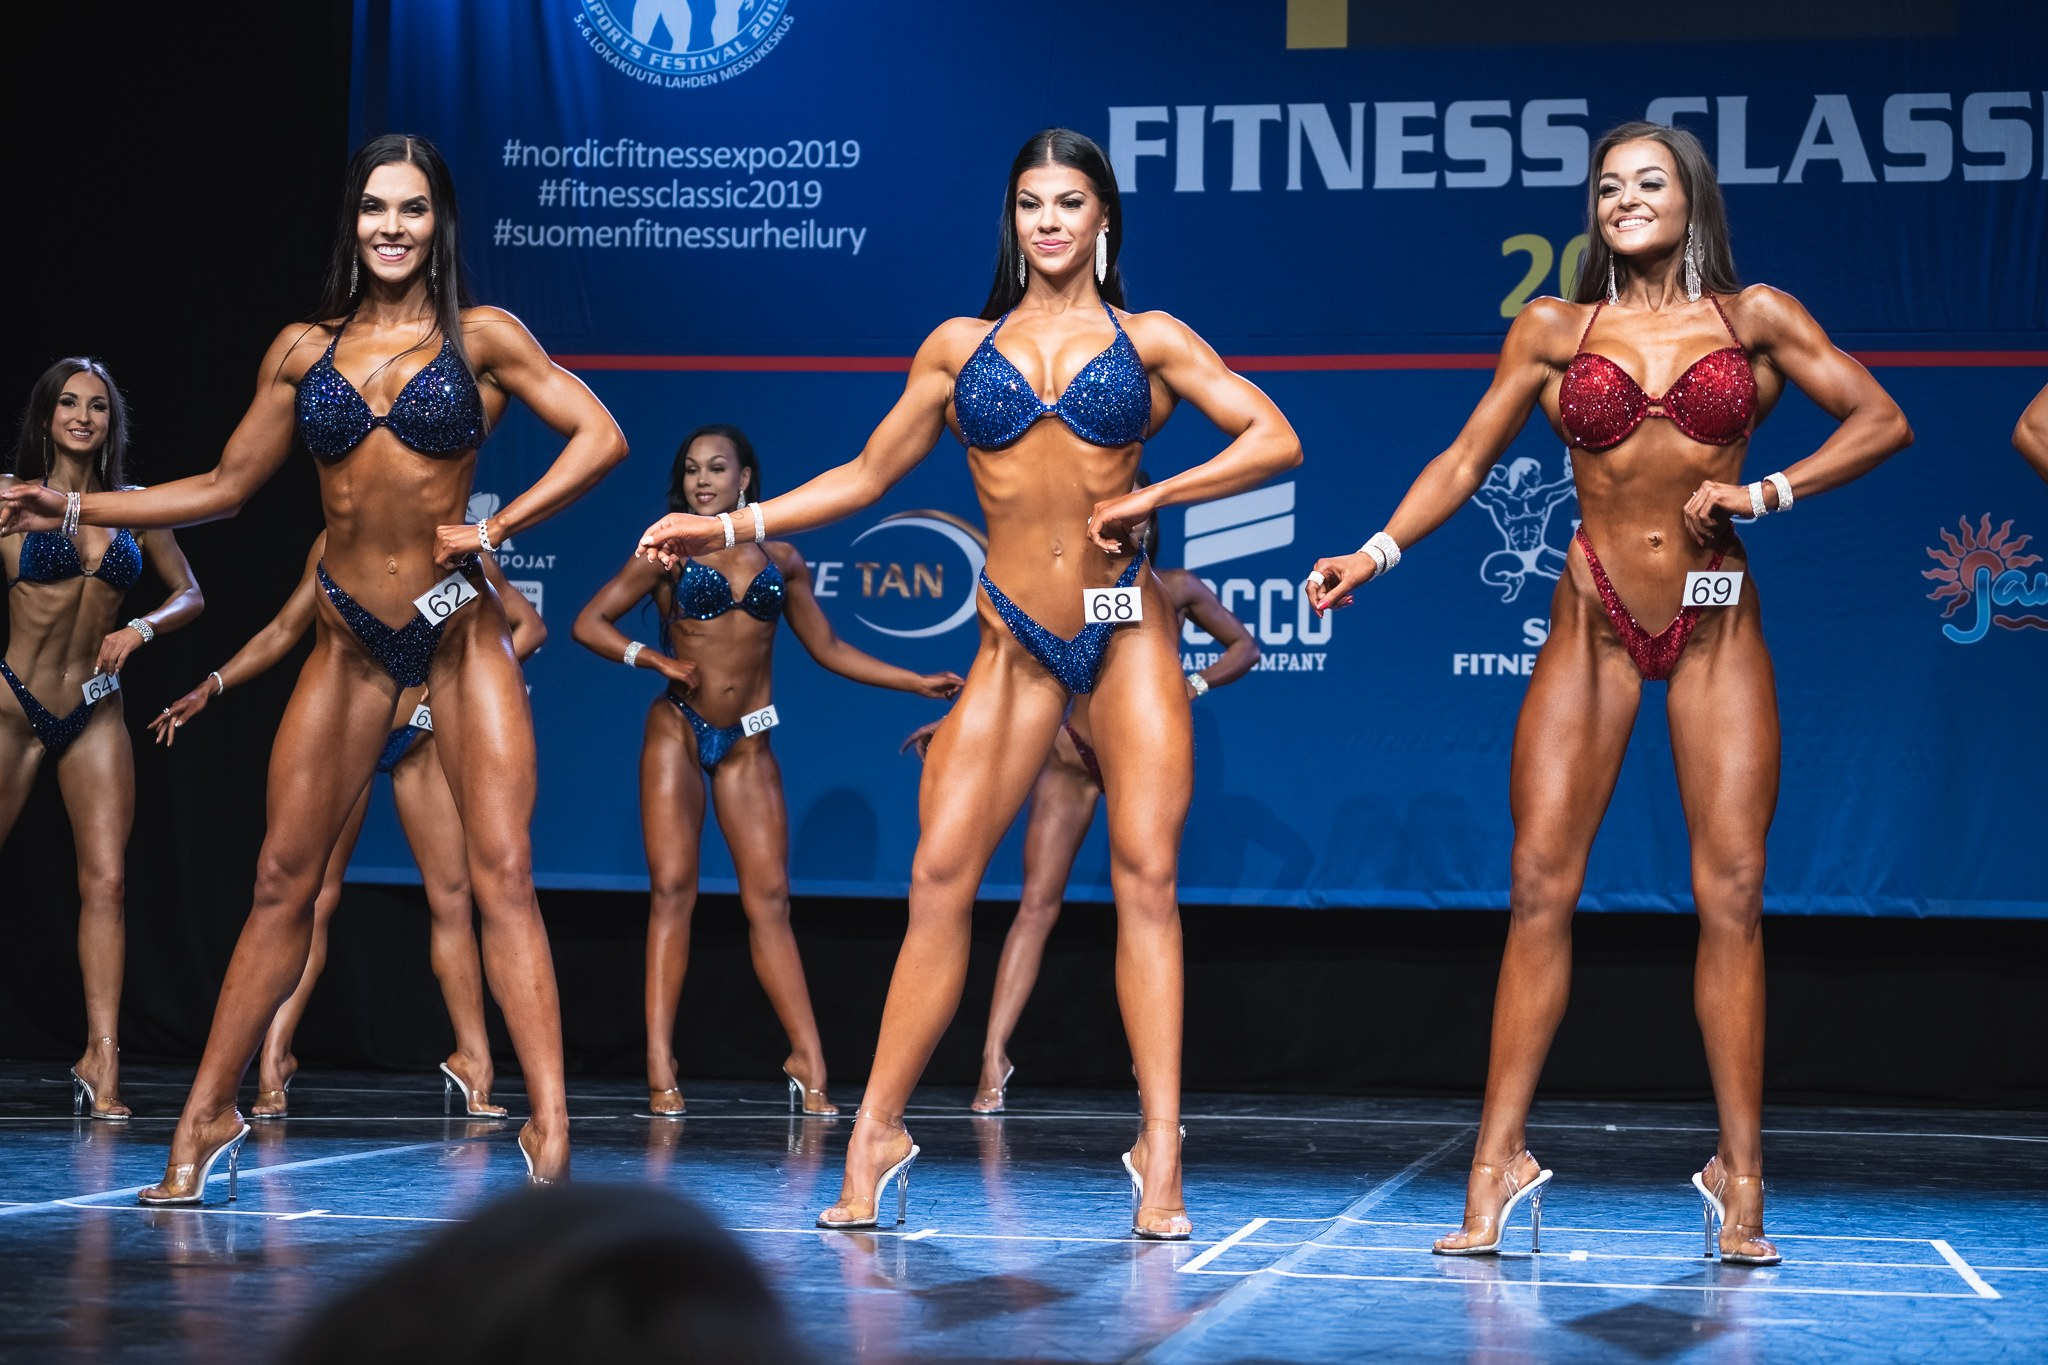 fitness classic 2019